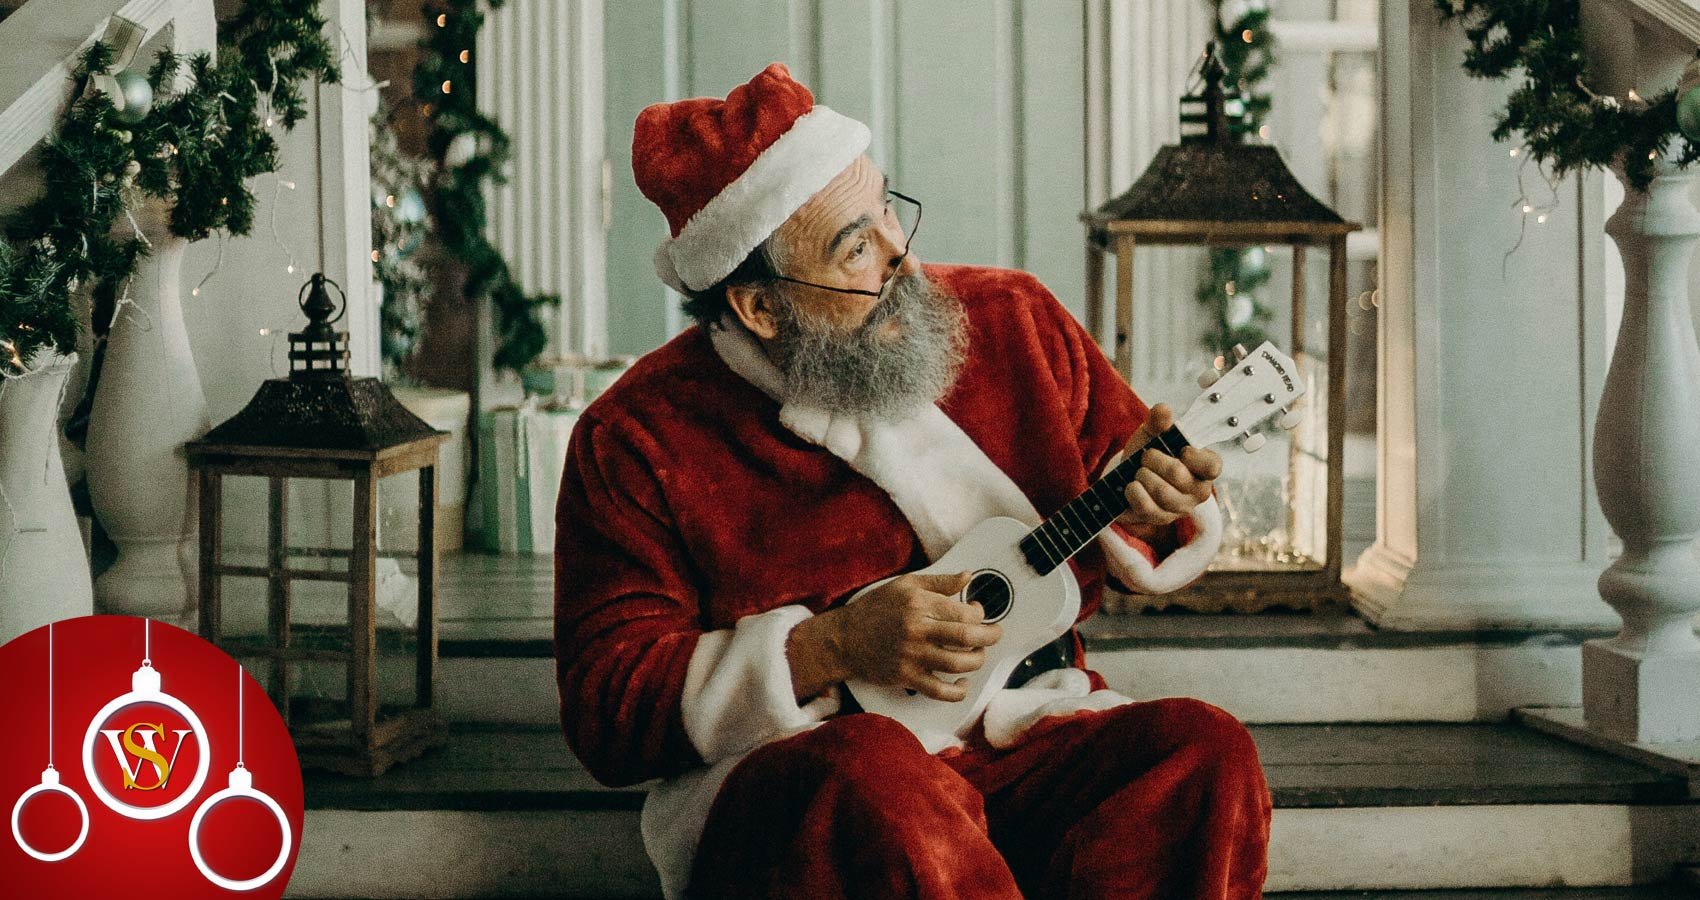 My Mr. Christmas, short story by Nancy Lou Henderson at Spillwords.com